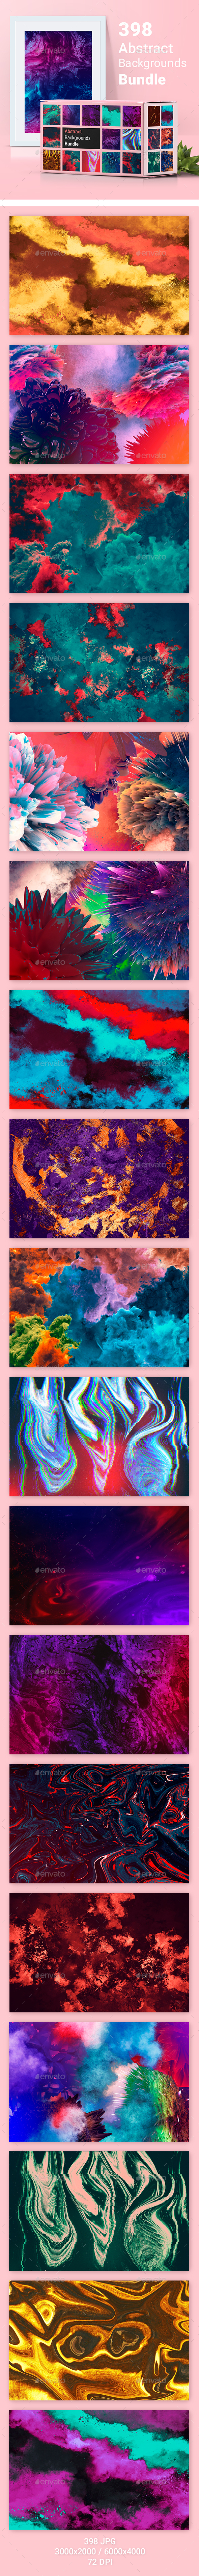 398 Abstract Backgrounds Bundle - Abstract Backgrounds